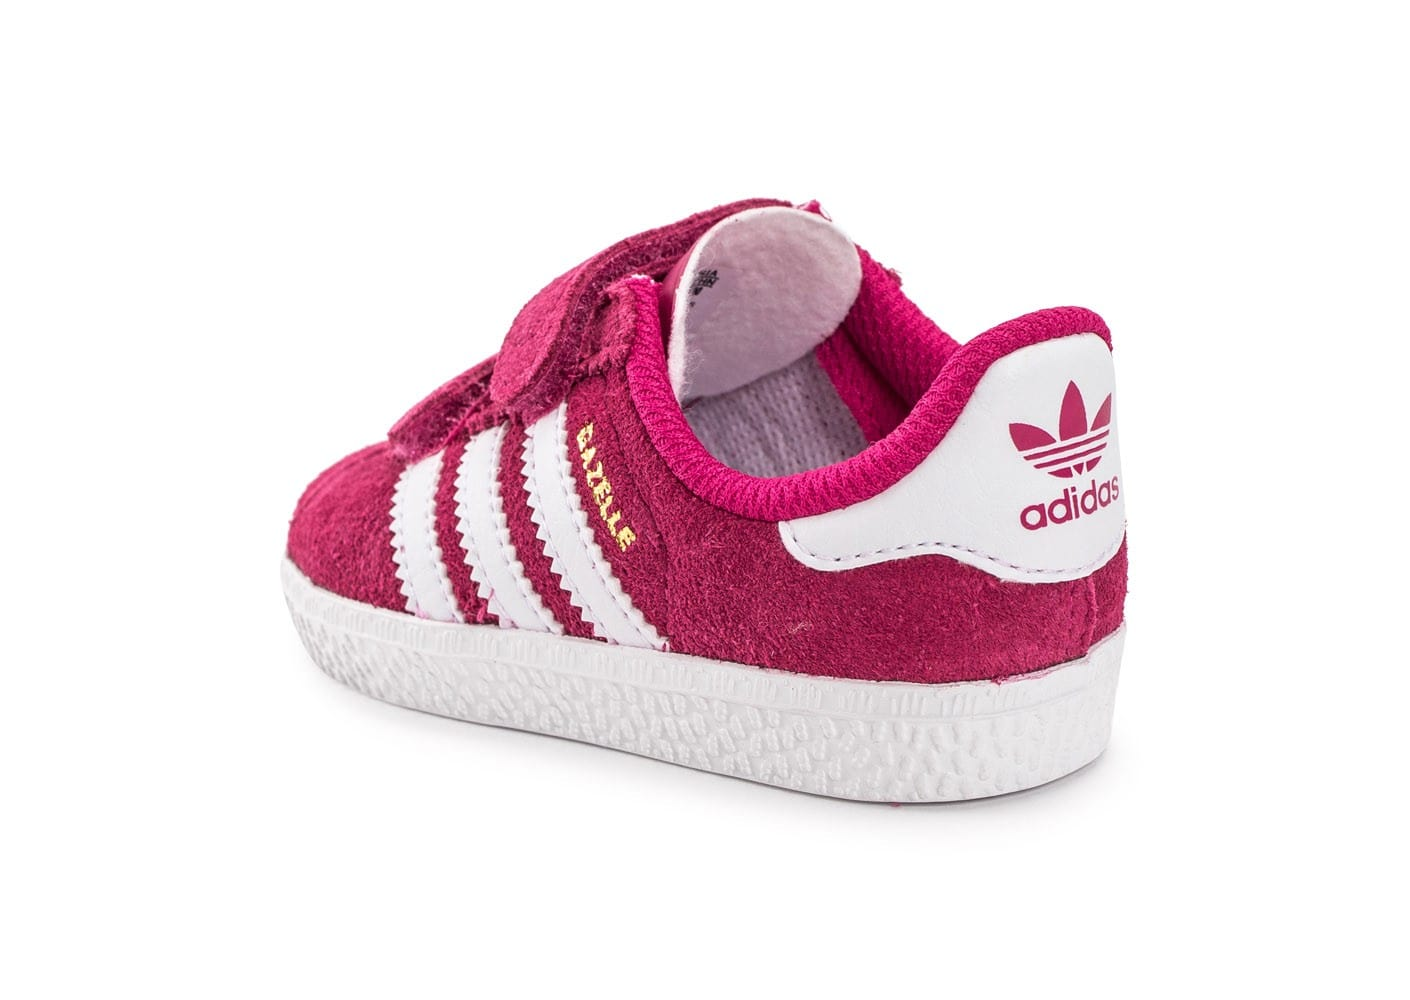 adidas gazelle 2 cf b b rose chaussures adidas chausport. Black Bedroom Furniture Sets. Home Design Ideas